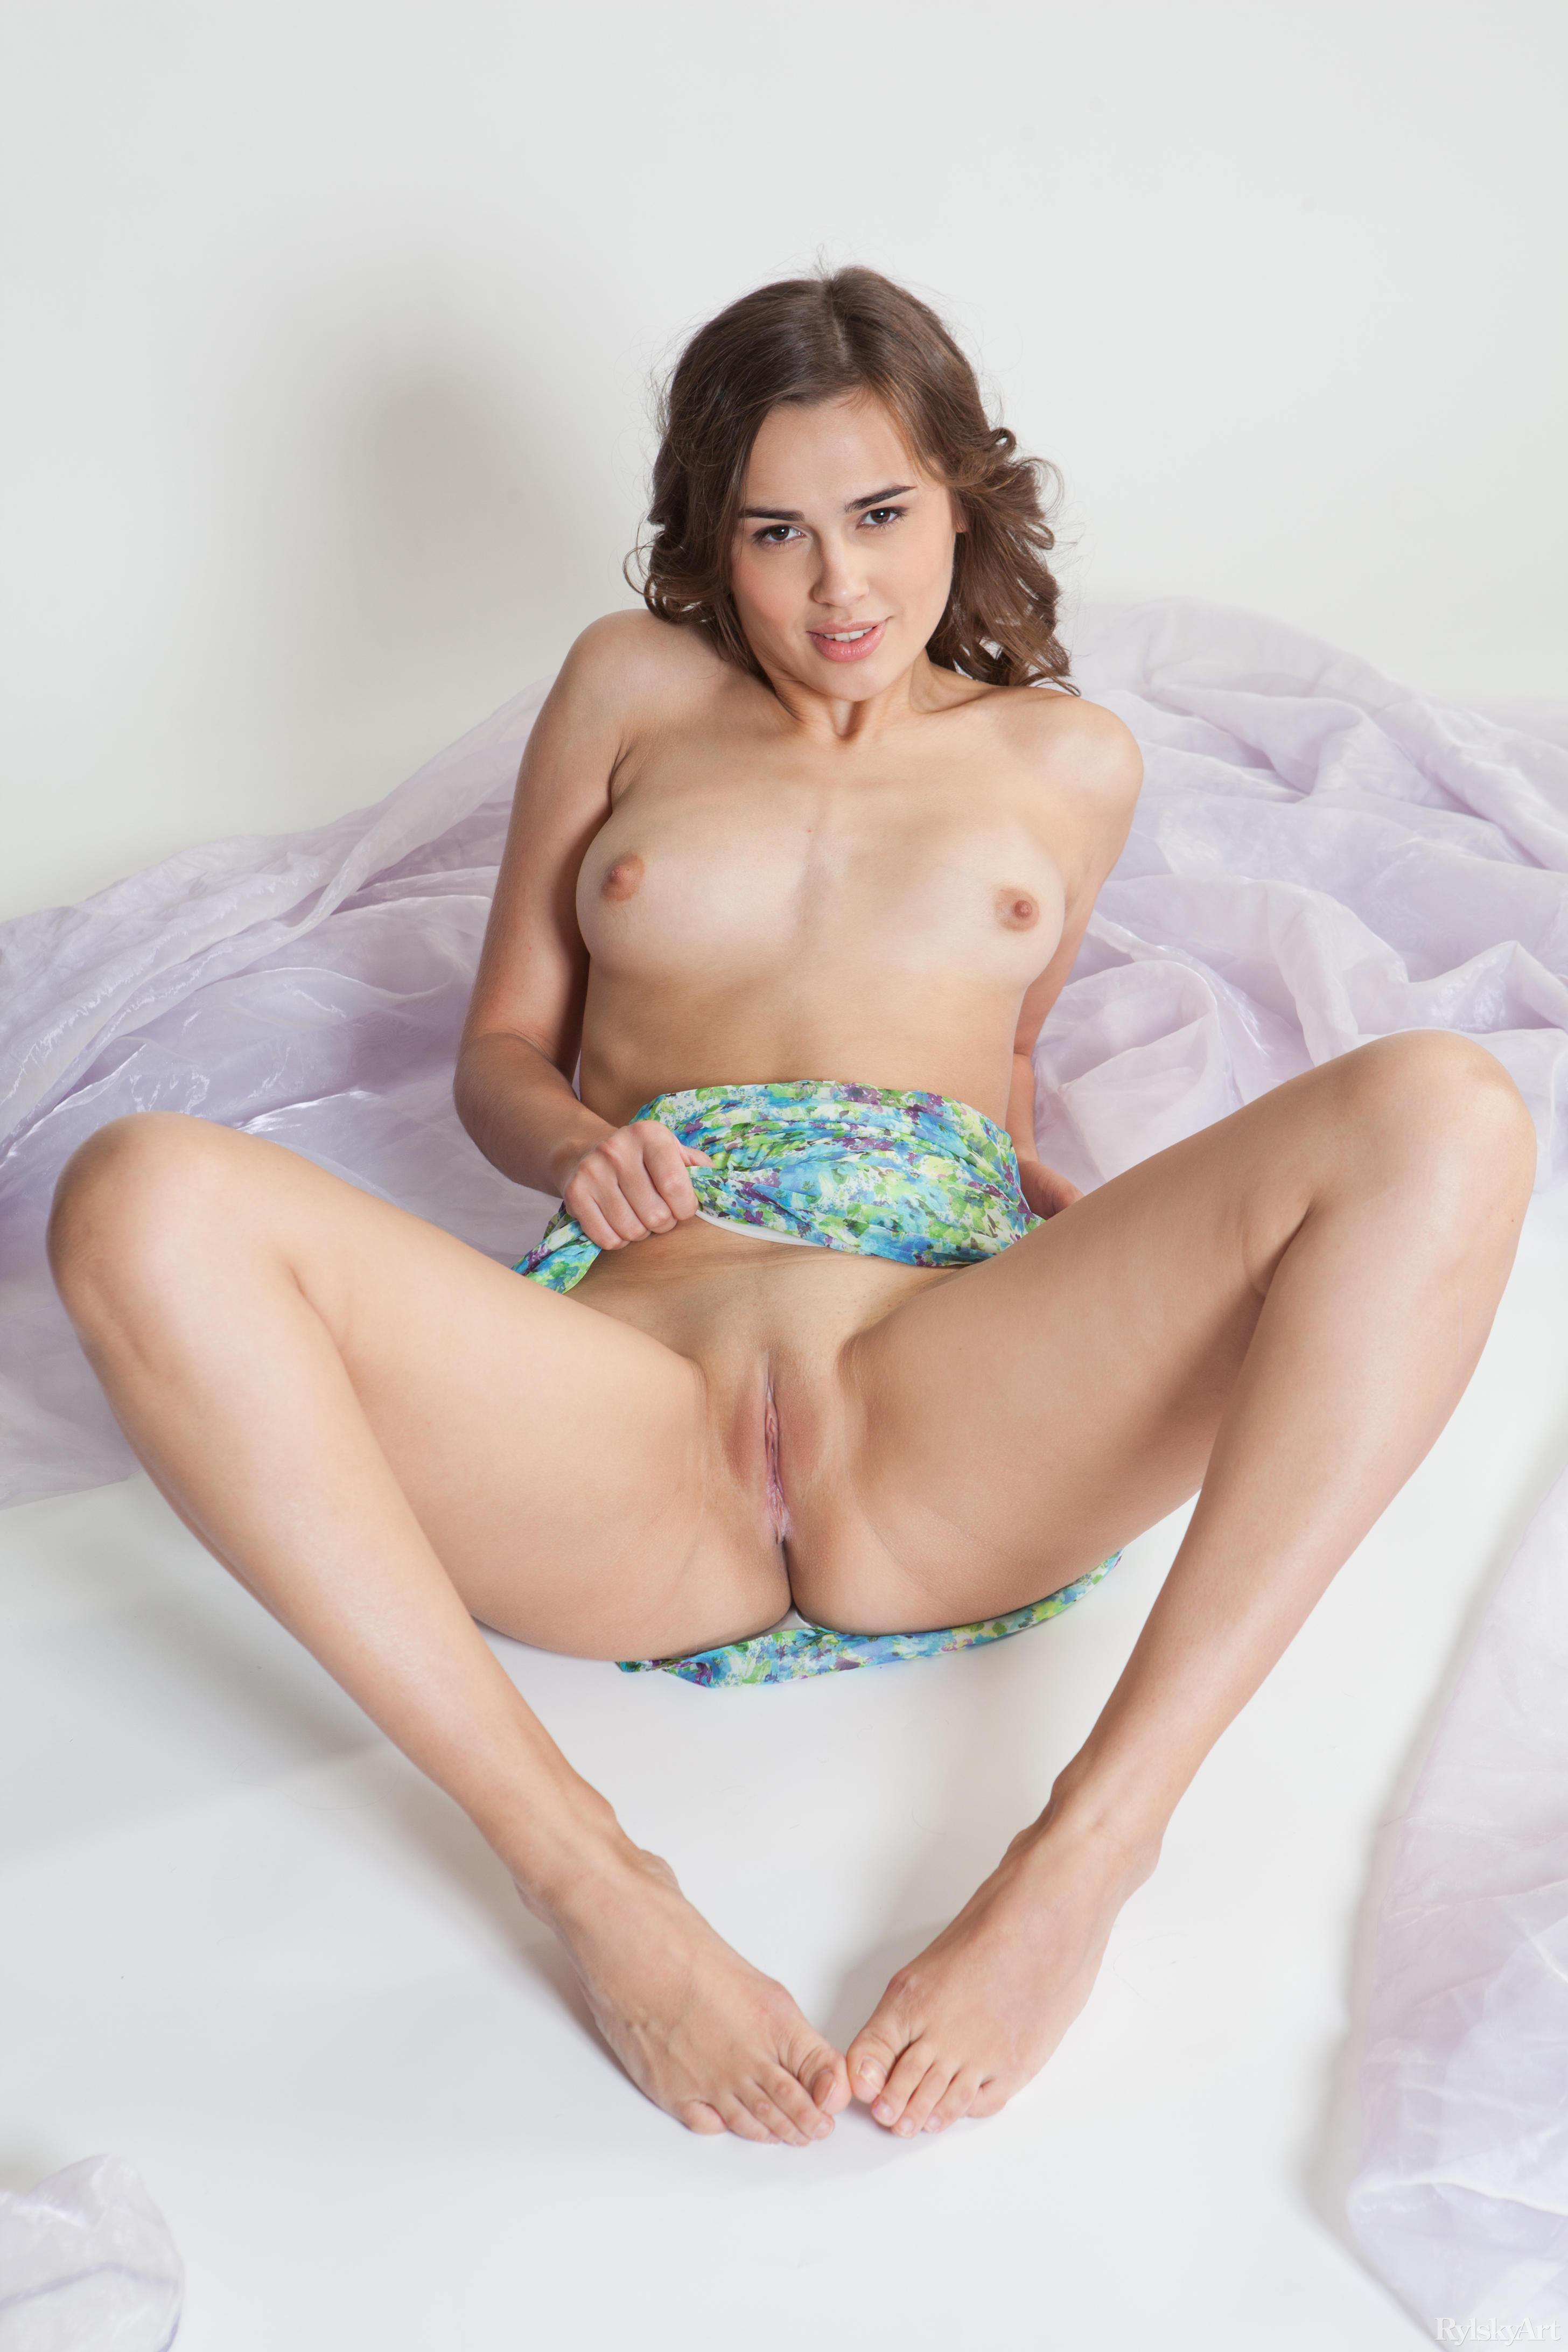 streaming fucking pussy videos